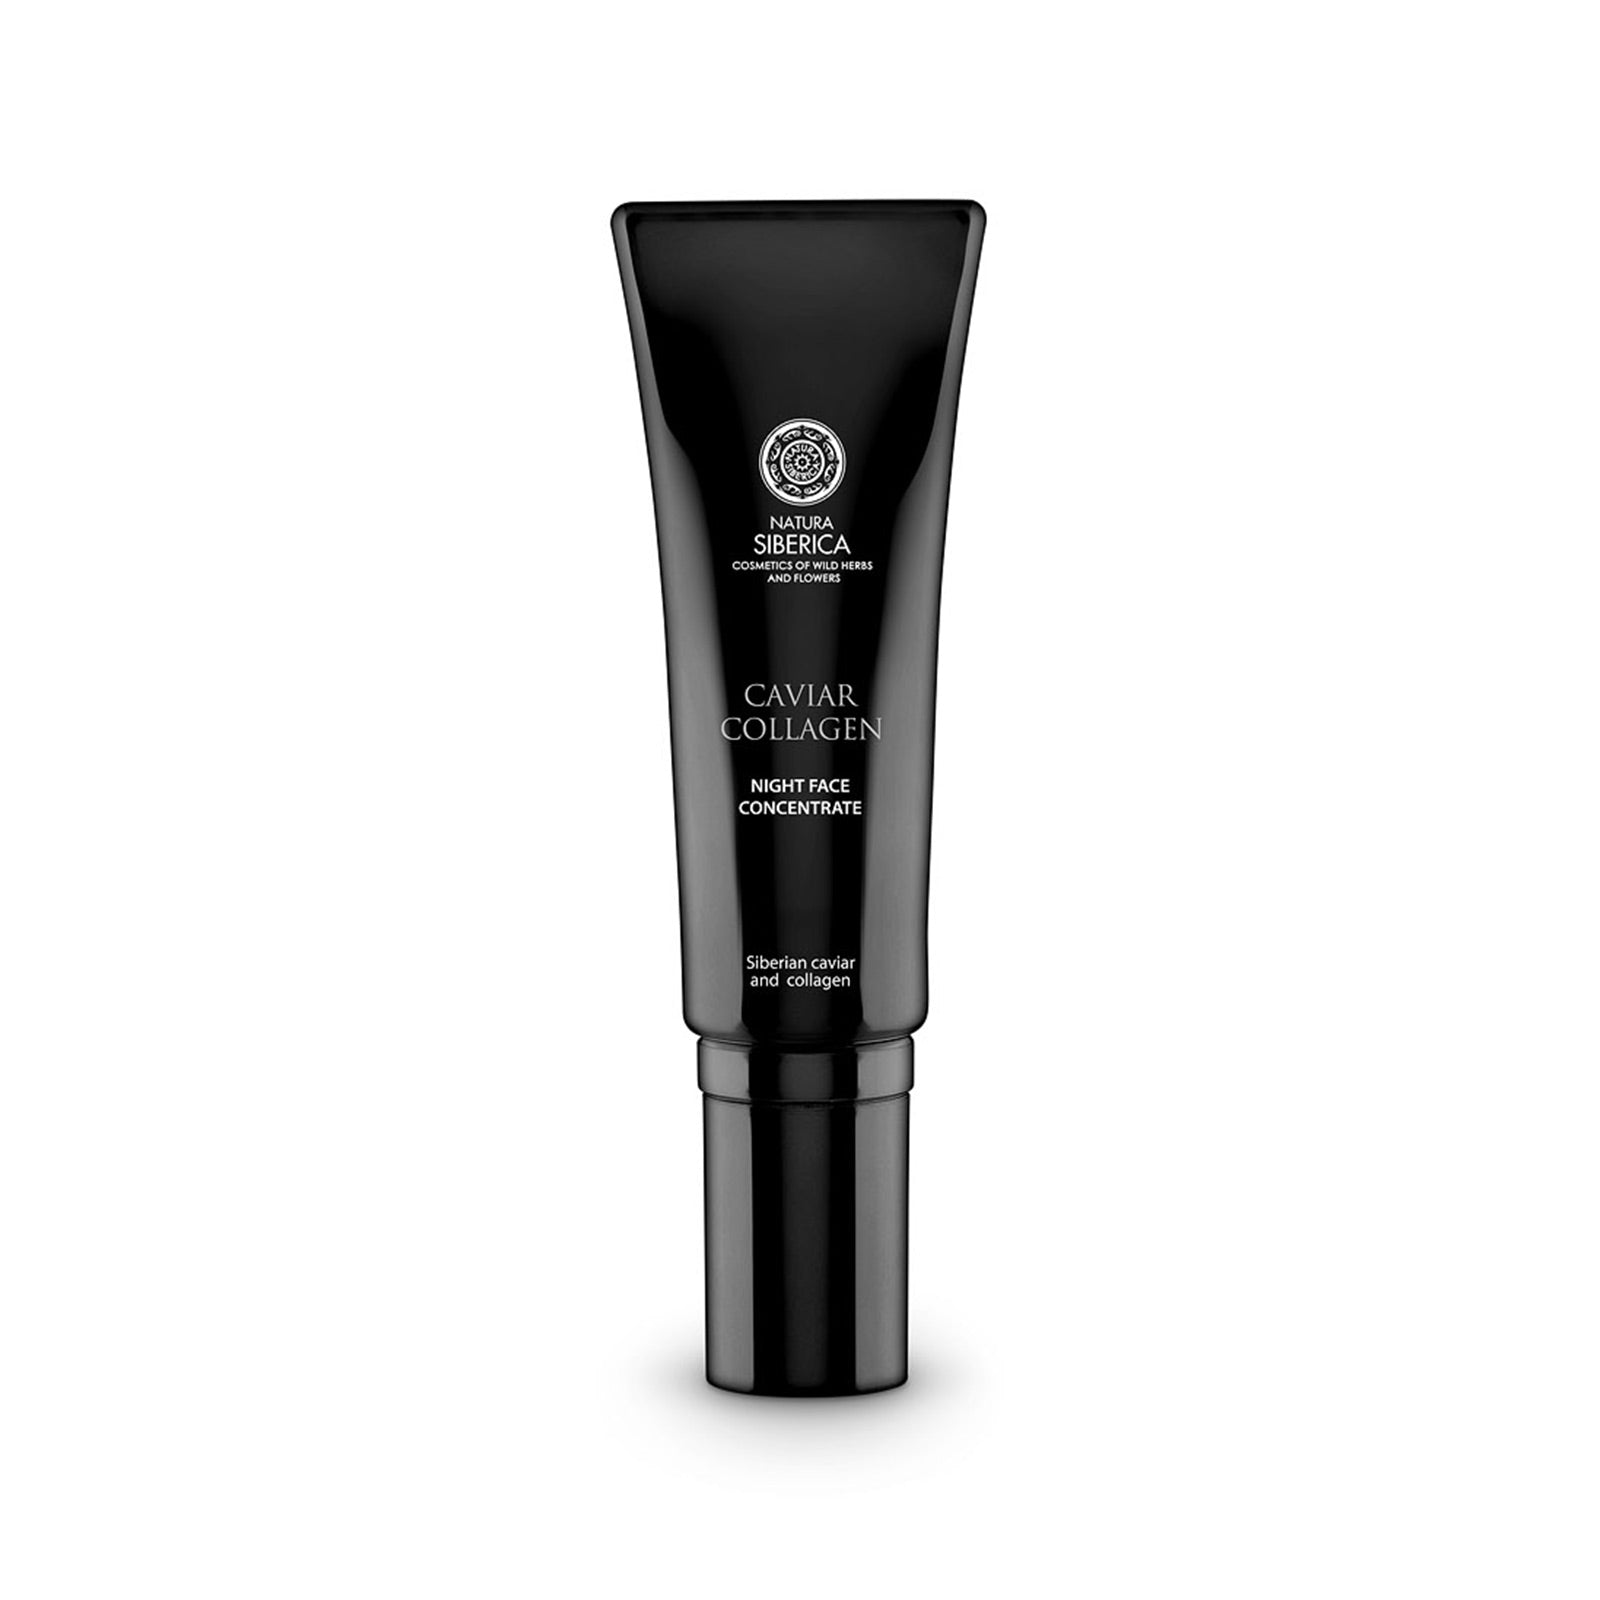 Caviar Collagen Night Face Concentrate, 30 ml